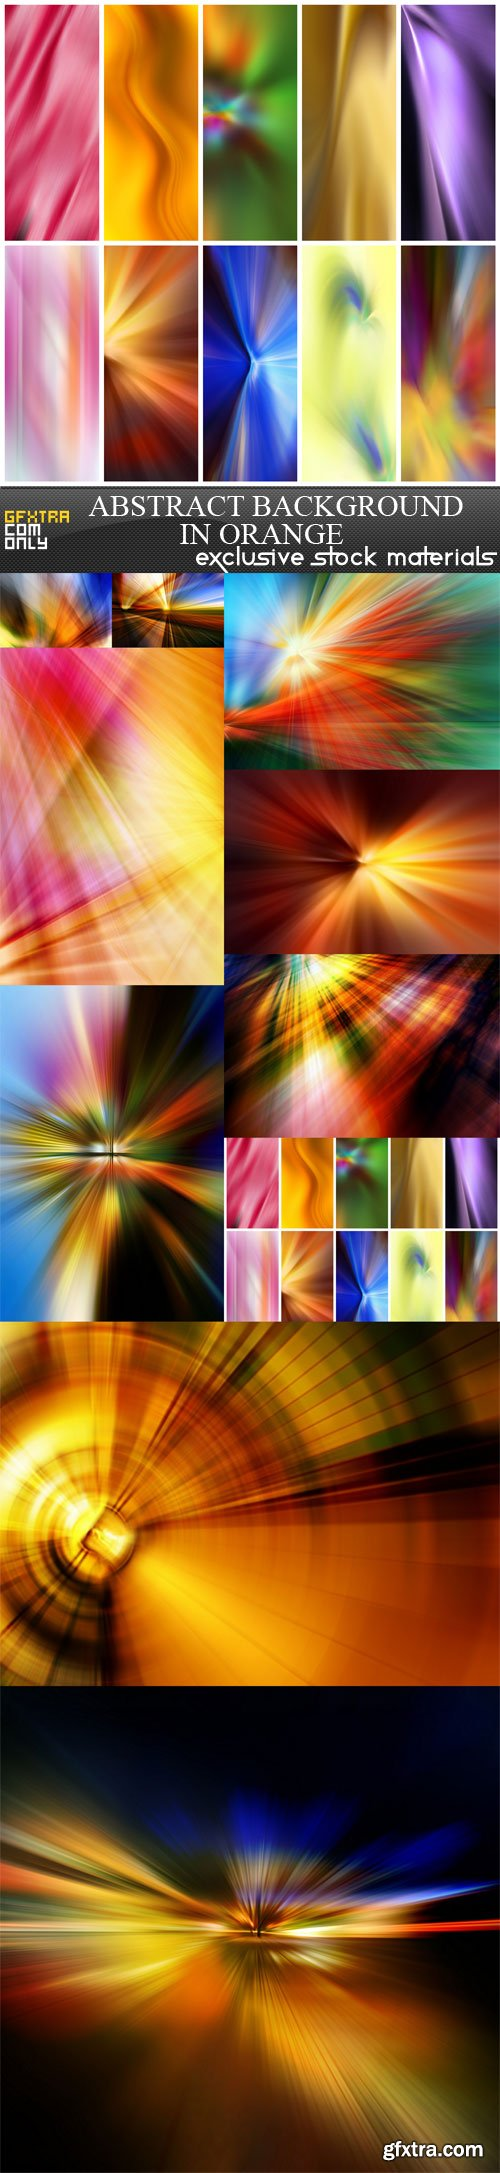 Abstract background in orange, 10 UHQ JPEG